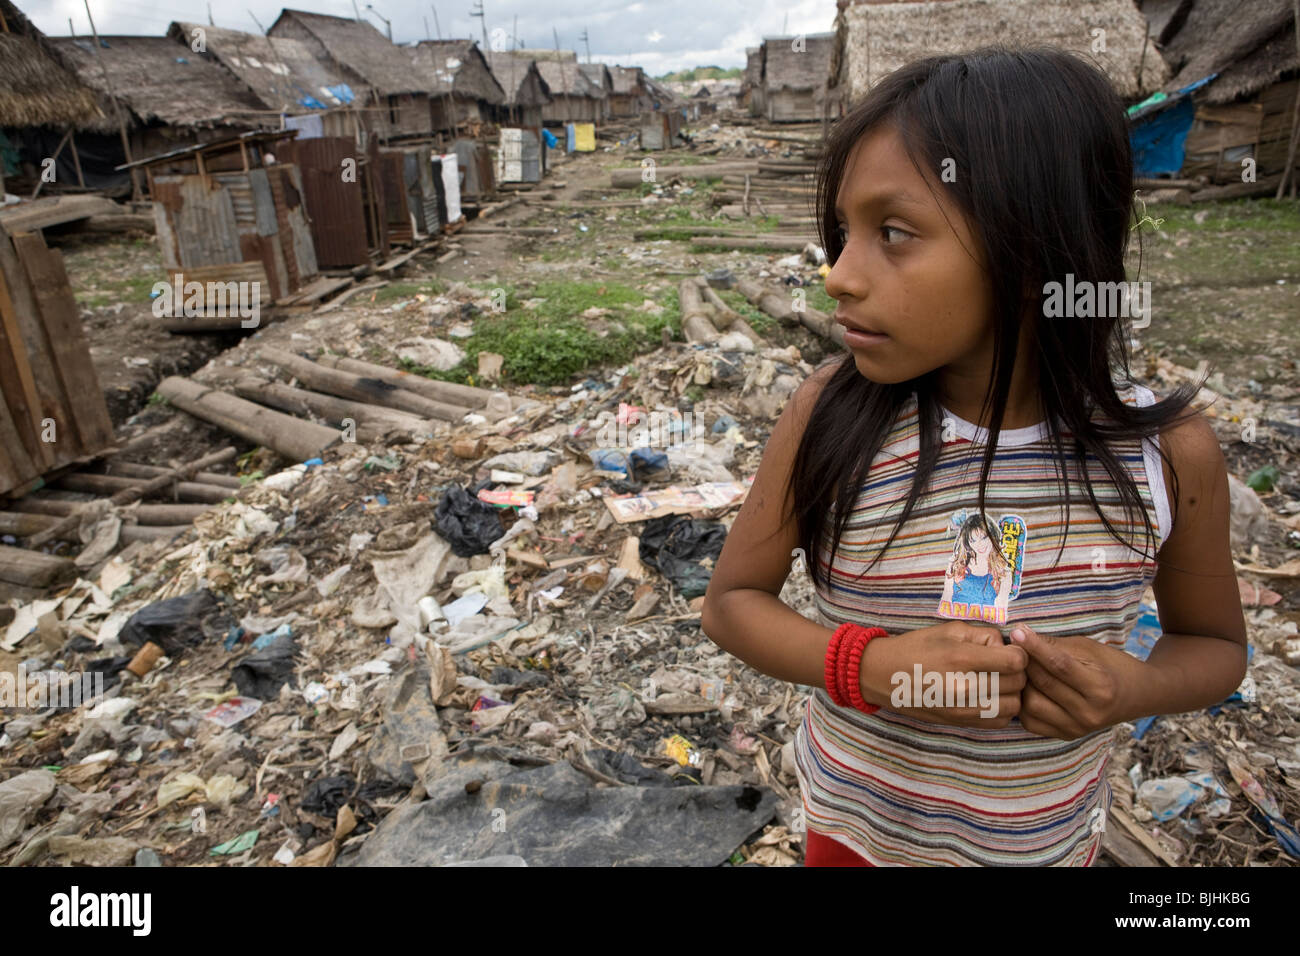 A girl stands in a garbage-strewn neighborhood in Puerto Belen, Iquitos, in Peru's Amazon Basin. - Stock Image